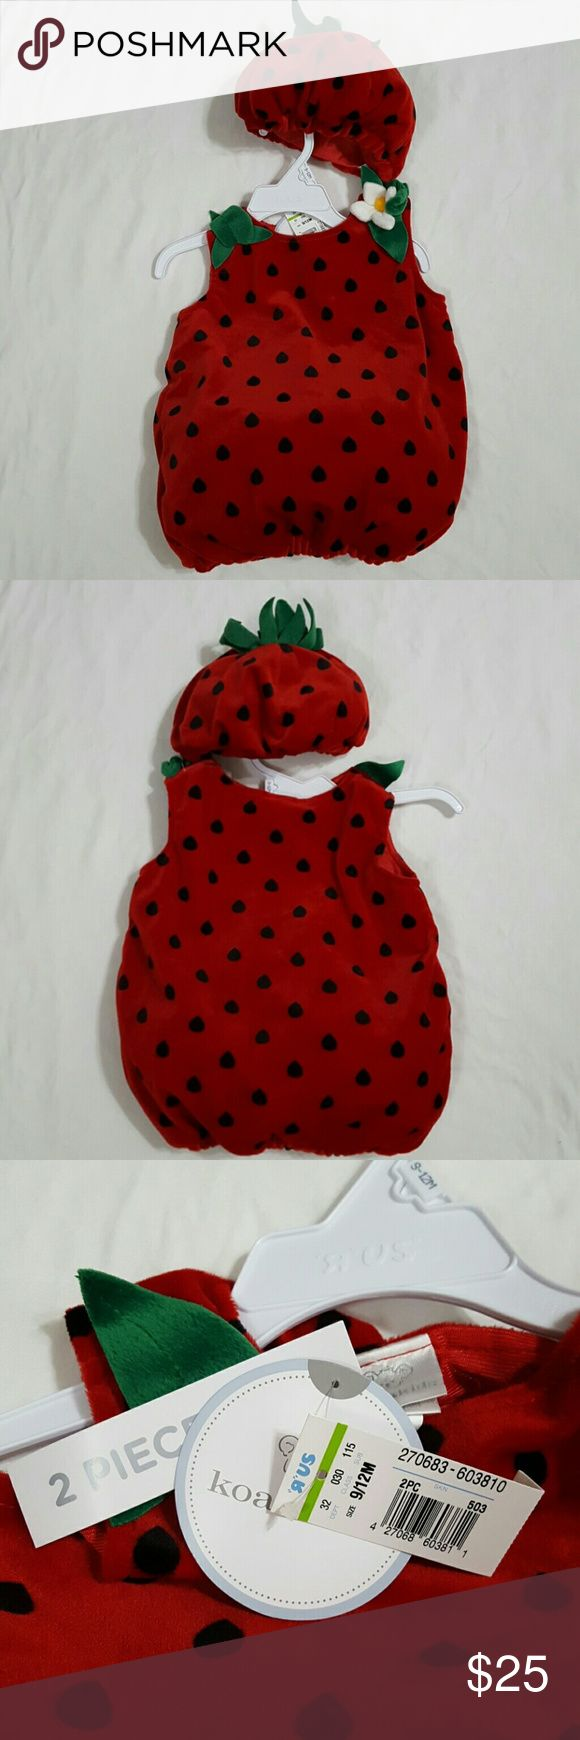 Baby strawberry costume Baby strawberry costume 9-12 months. Super cute! New with tags Koala Kids Costumes